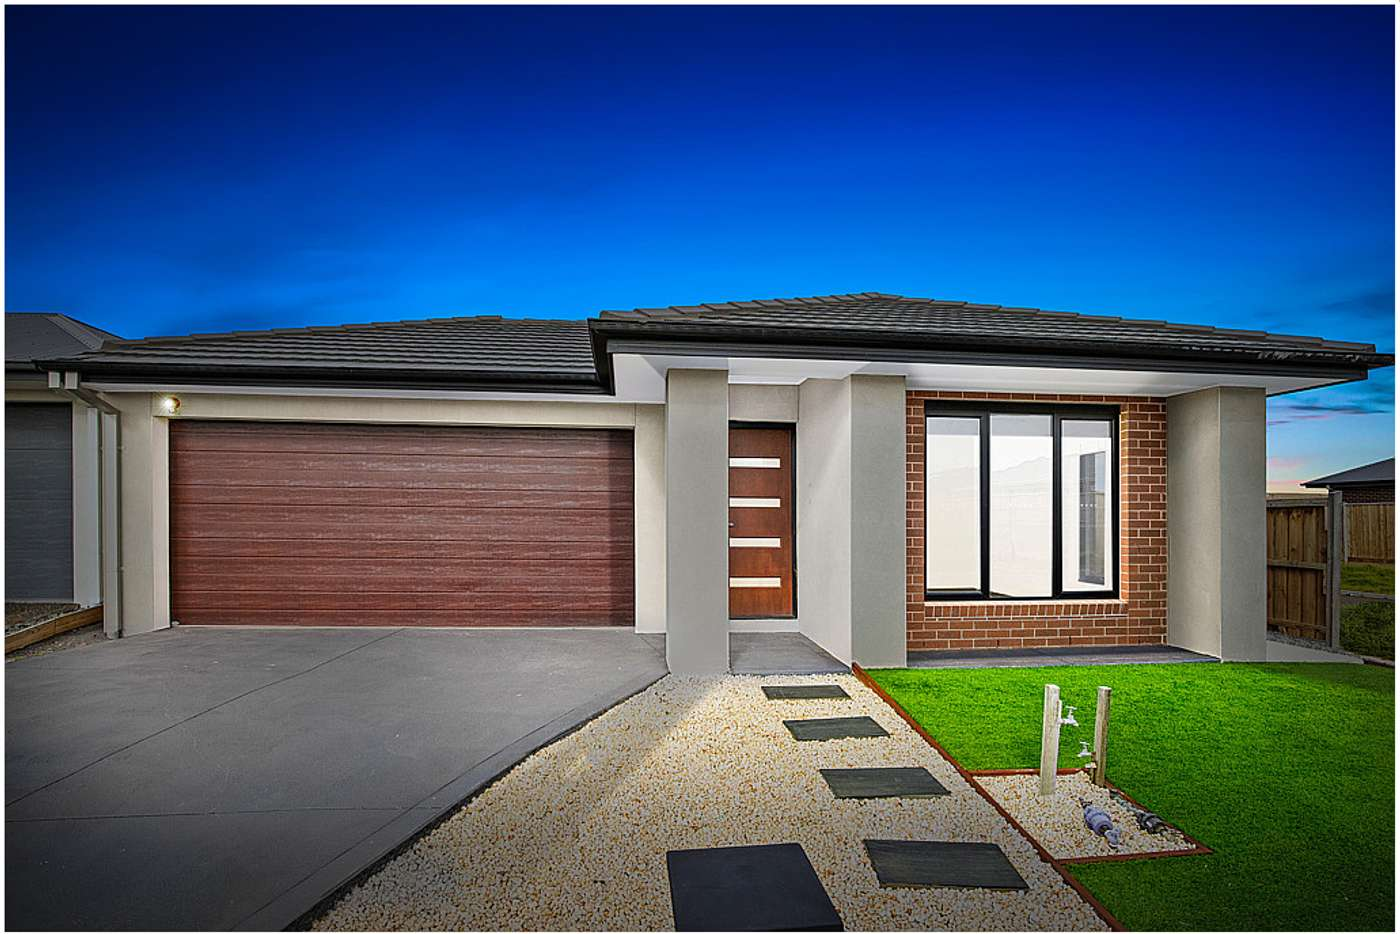 Main view of Homely house listing, 44 Cloudburst Avenue, Wyndham Vale VIC 3024